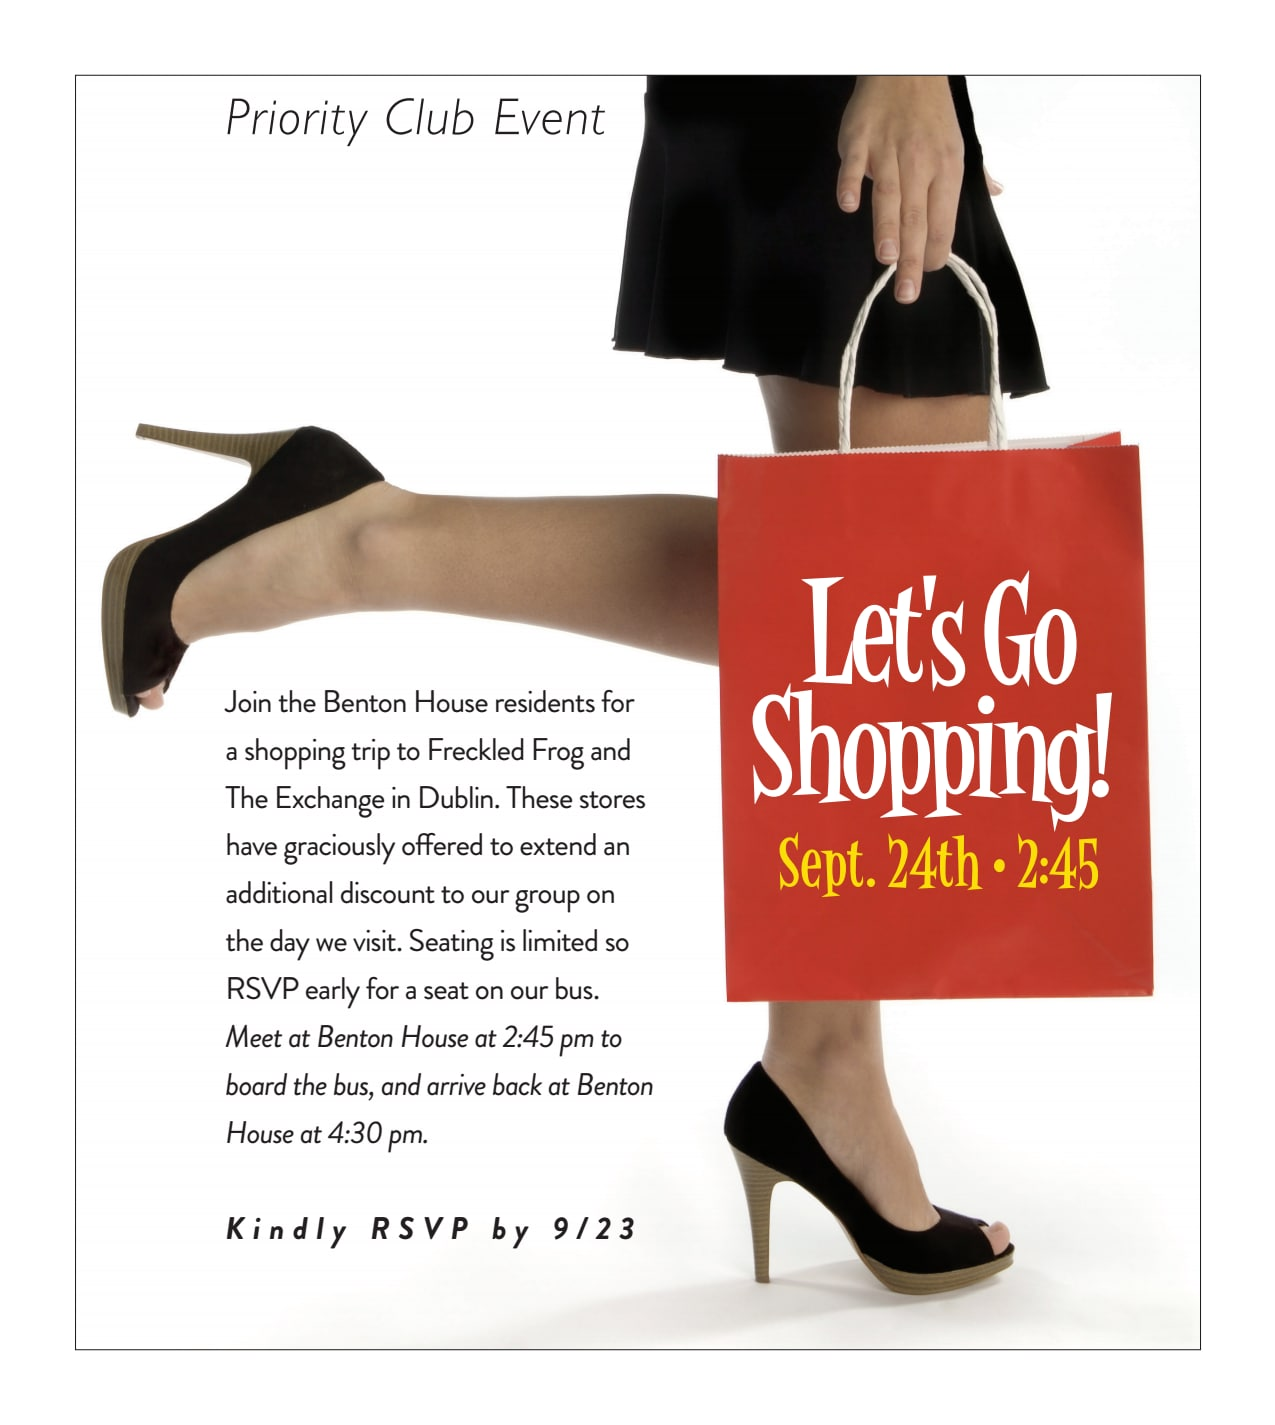 Let's Go Shopping - activities at Benton House of Staley Hills in Kansas City, MO